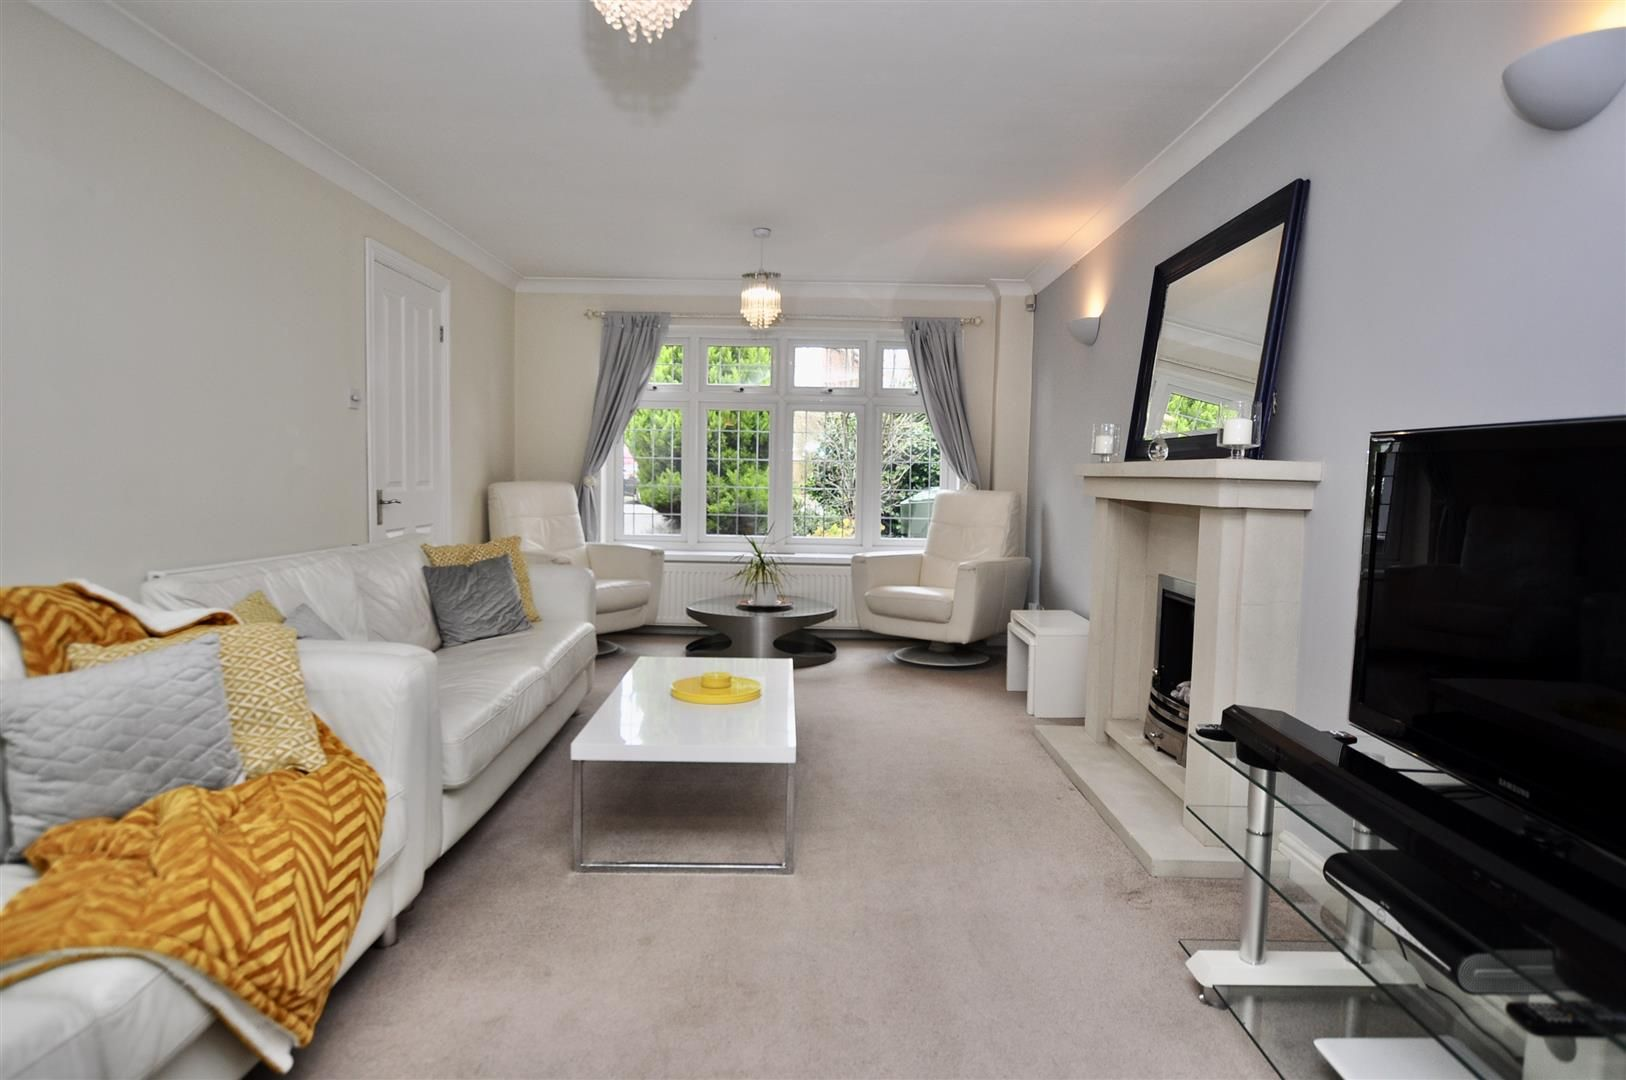 4 bed house for sale in Hagley 14